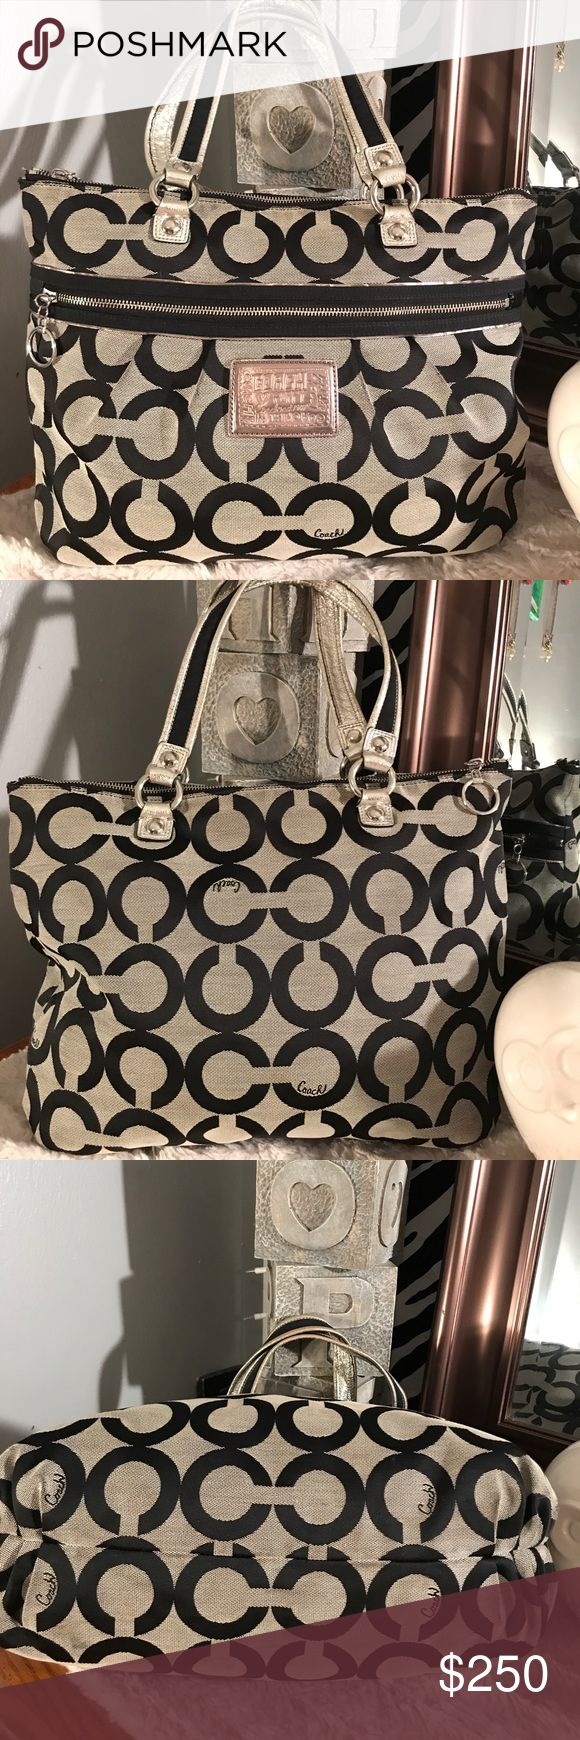 """Authentic coach large tote Very large authentic coach poppy tote with signature C logo print in black and gray with silver accents. Front of purse has one large zipper pocket. Inside of bag has one zipper pocket and a couple pockets to contain accessories. Outside of bag is in perfect condition no rips tears stains or holes and handles are in perfect condition. Inside of bag does show some signs of spots. Price Will be adjusted accordingly! Measurements are 15 """" across by 13""""high and 6""""…"""